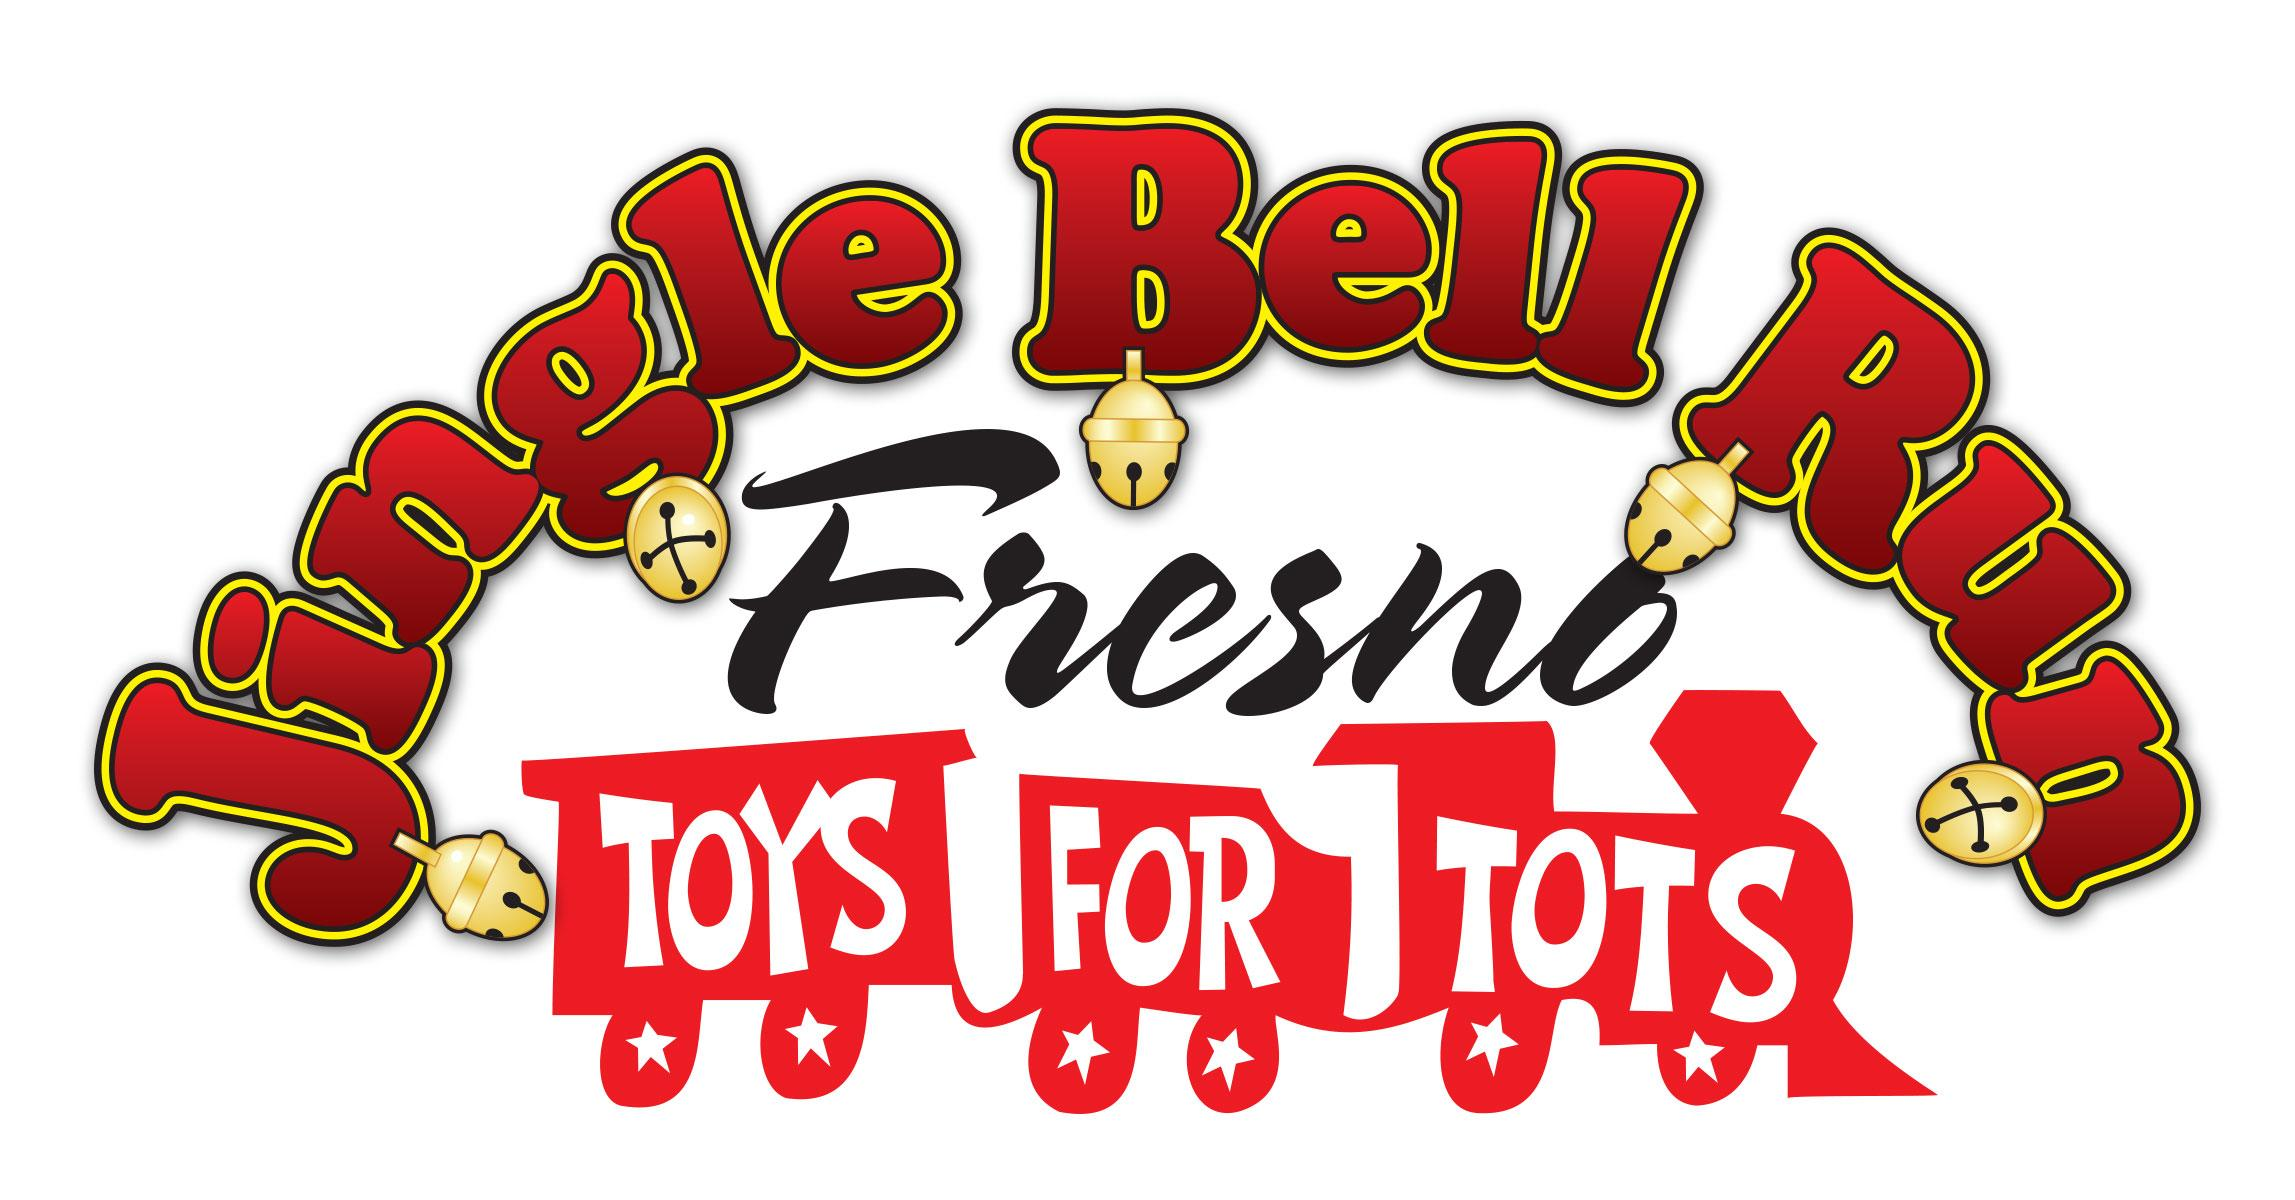 Toys For Tots Certificate : Jingle bell run for toys tots volunteer registration